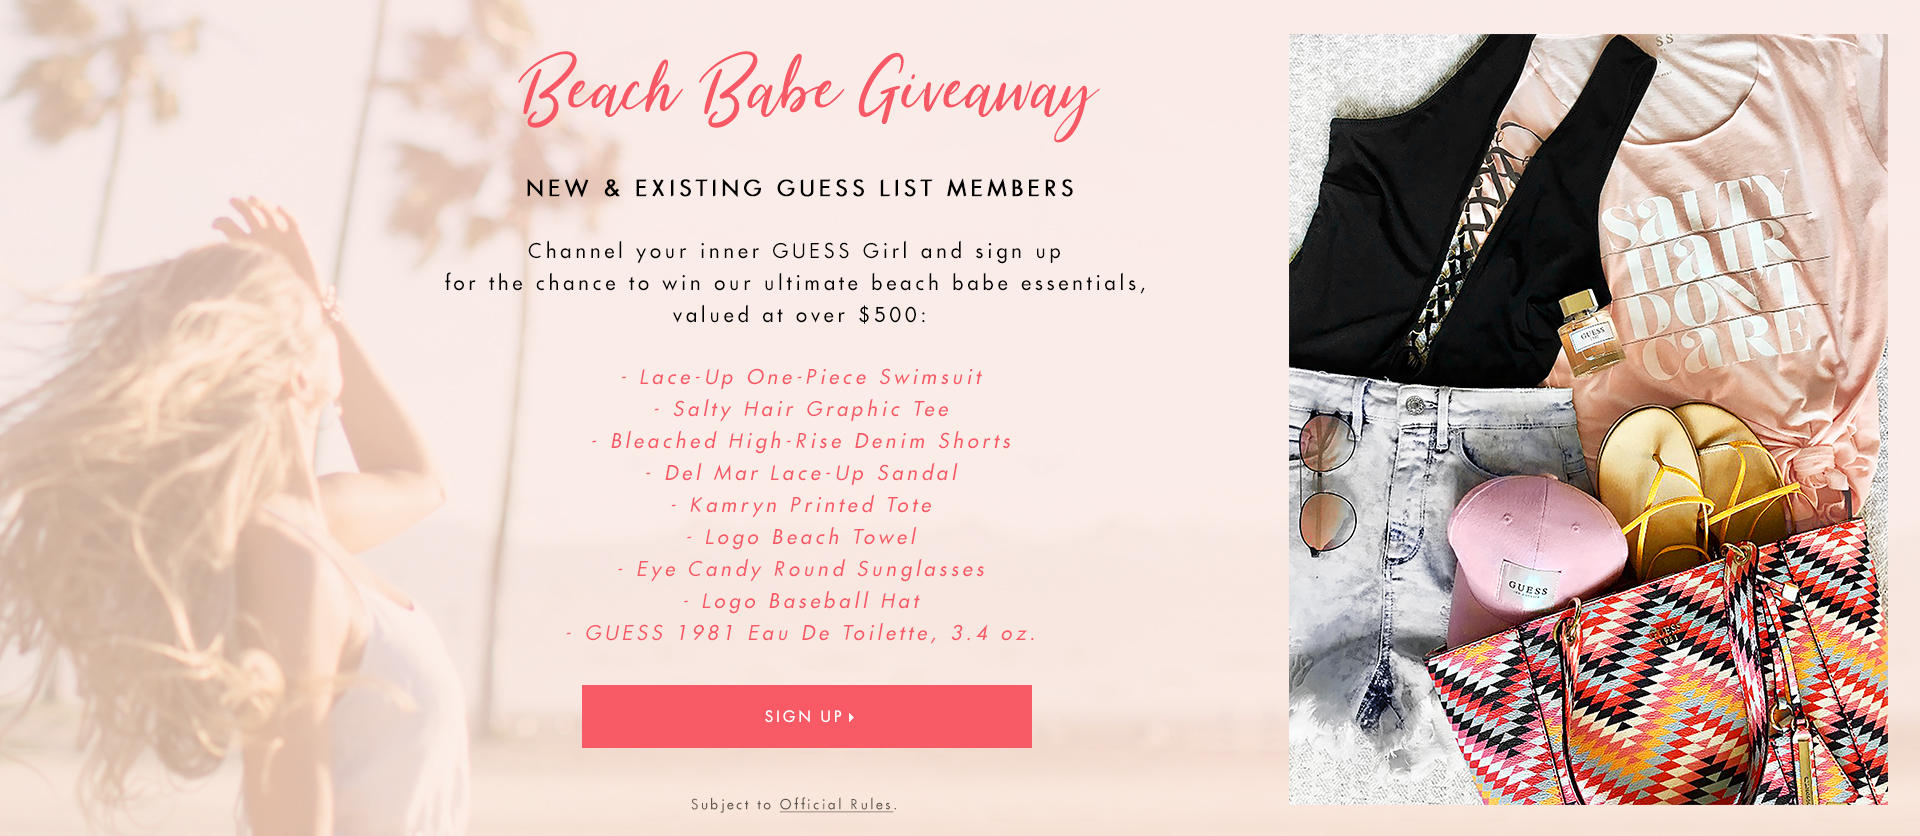 Beach Babe Giveaway